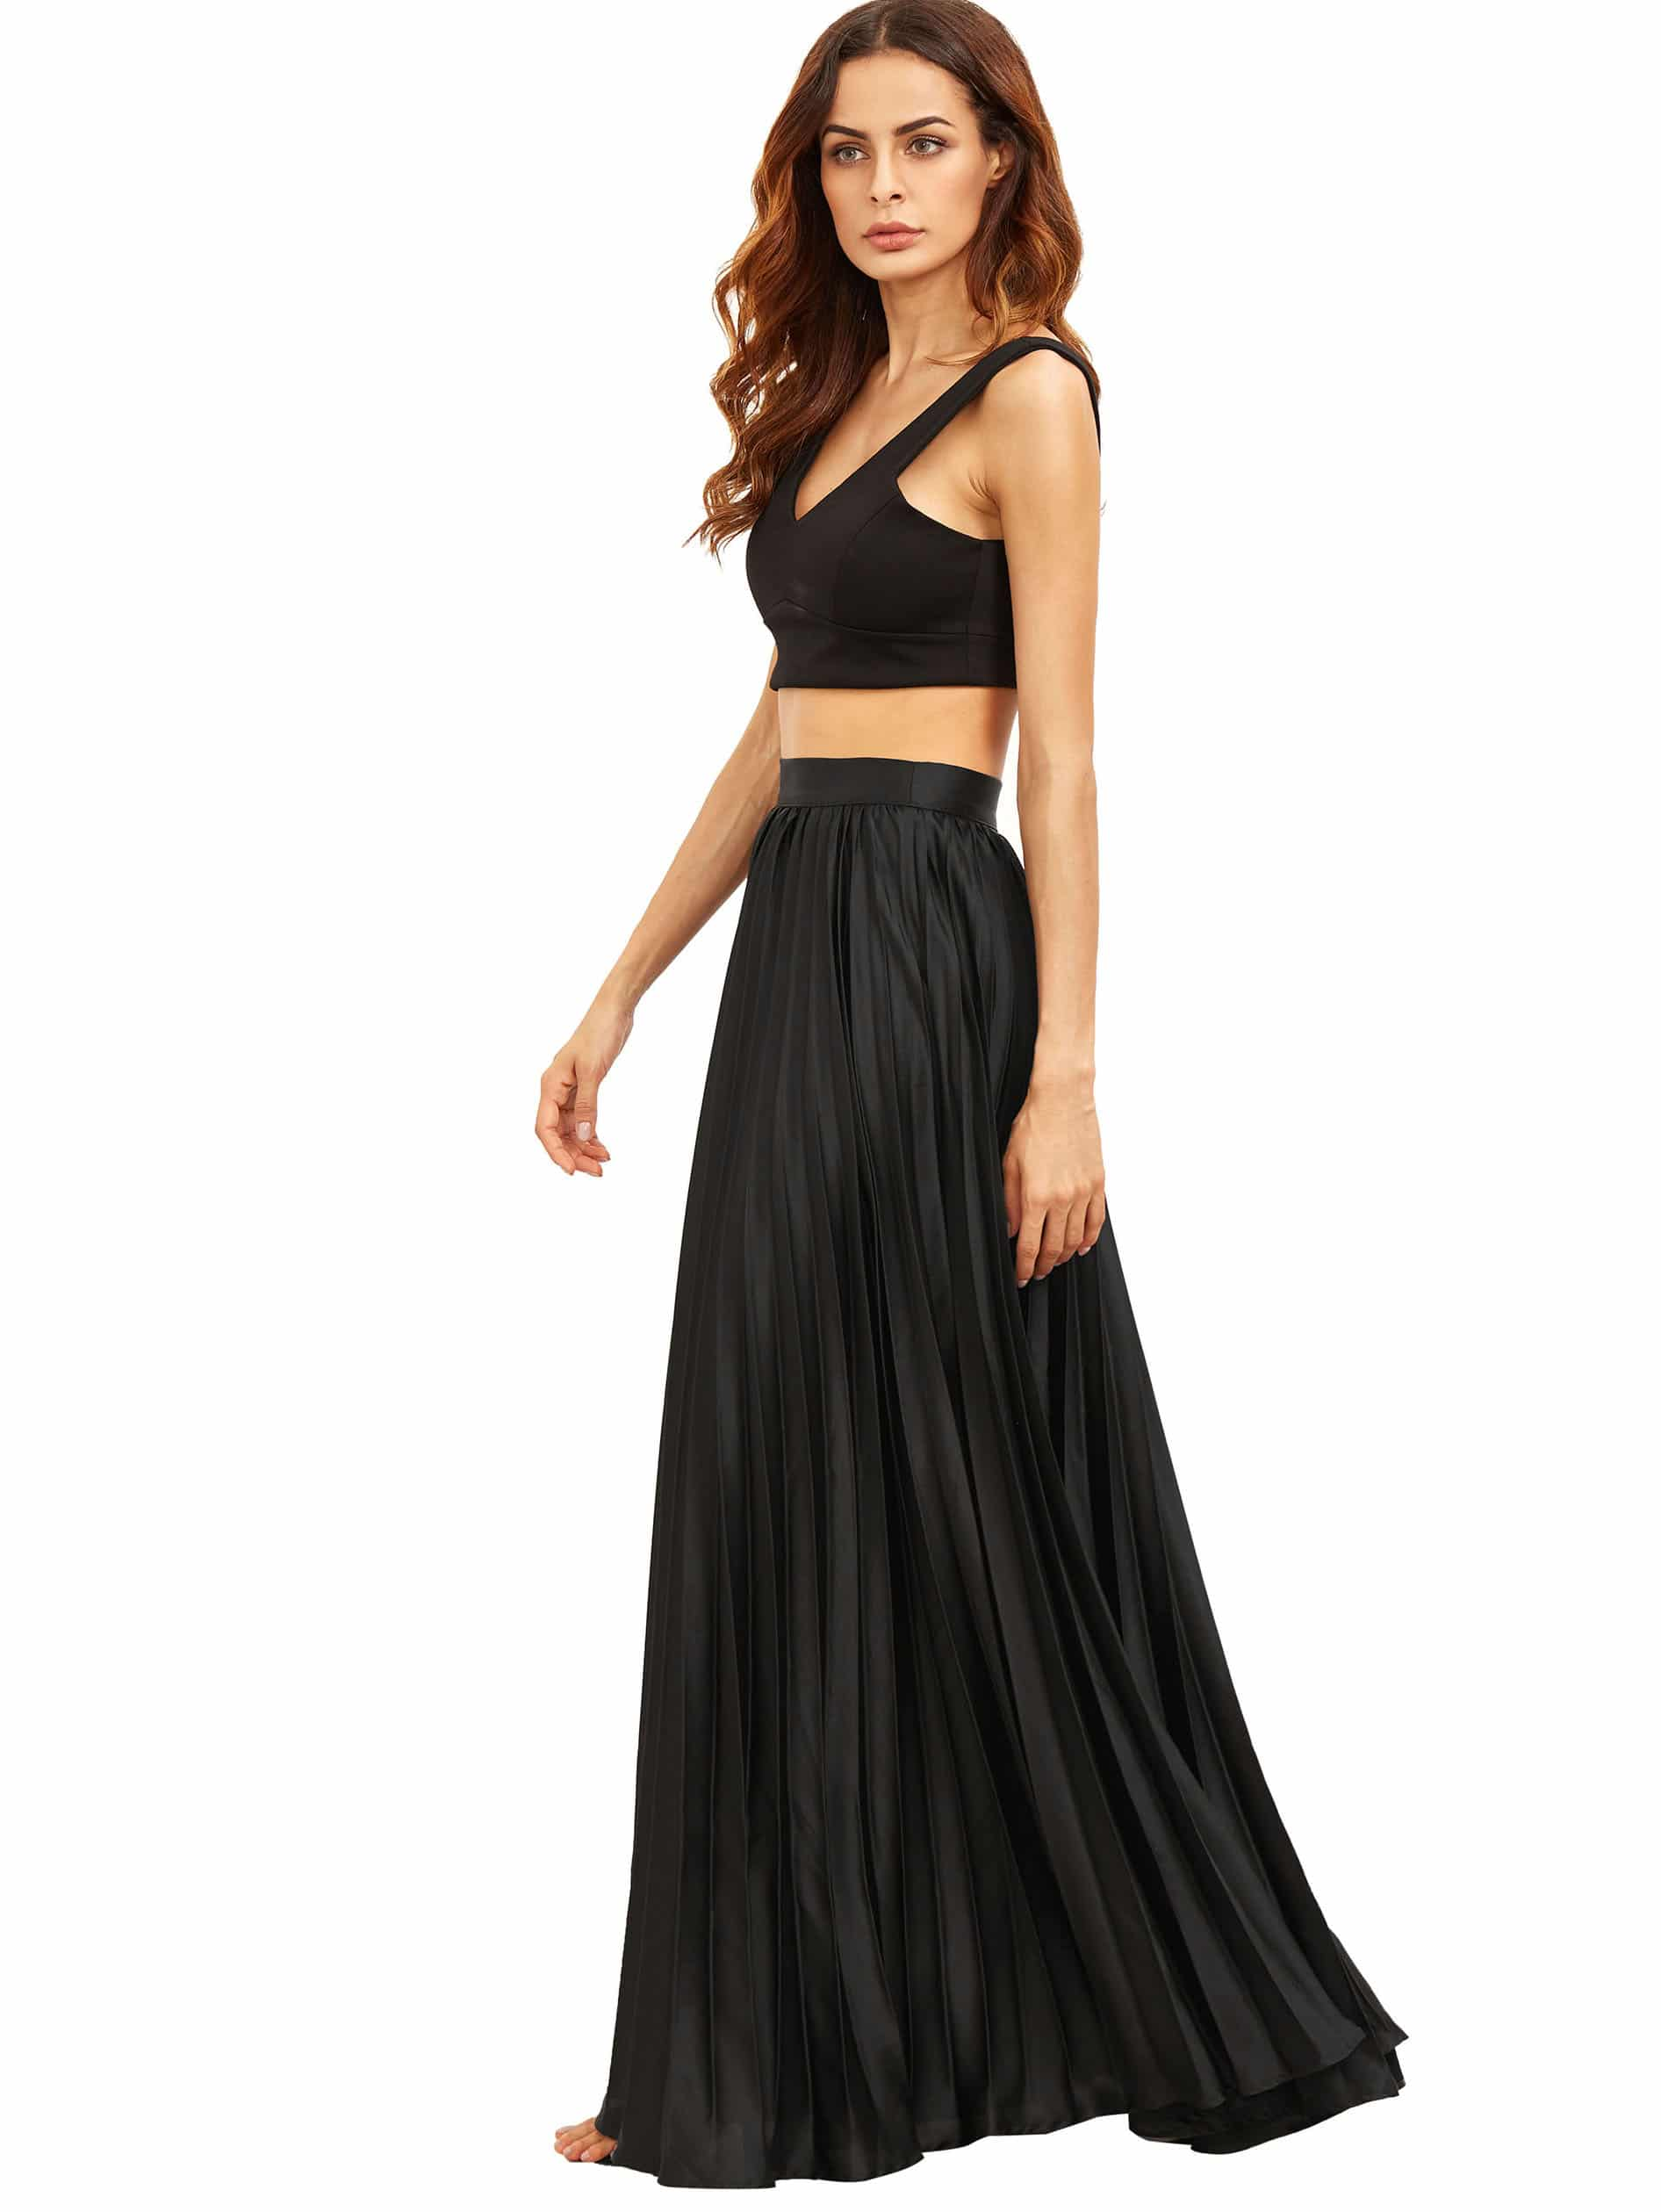 Pleated Flare Floor Length Skirt With Zipper Side SheIn